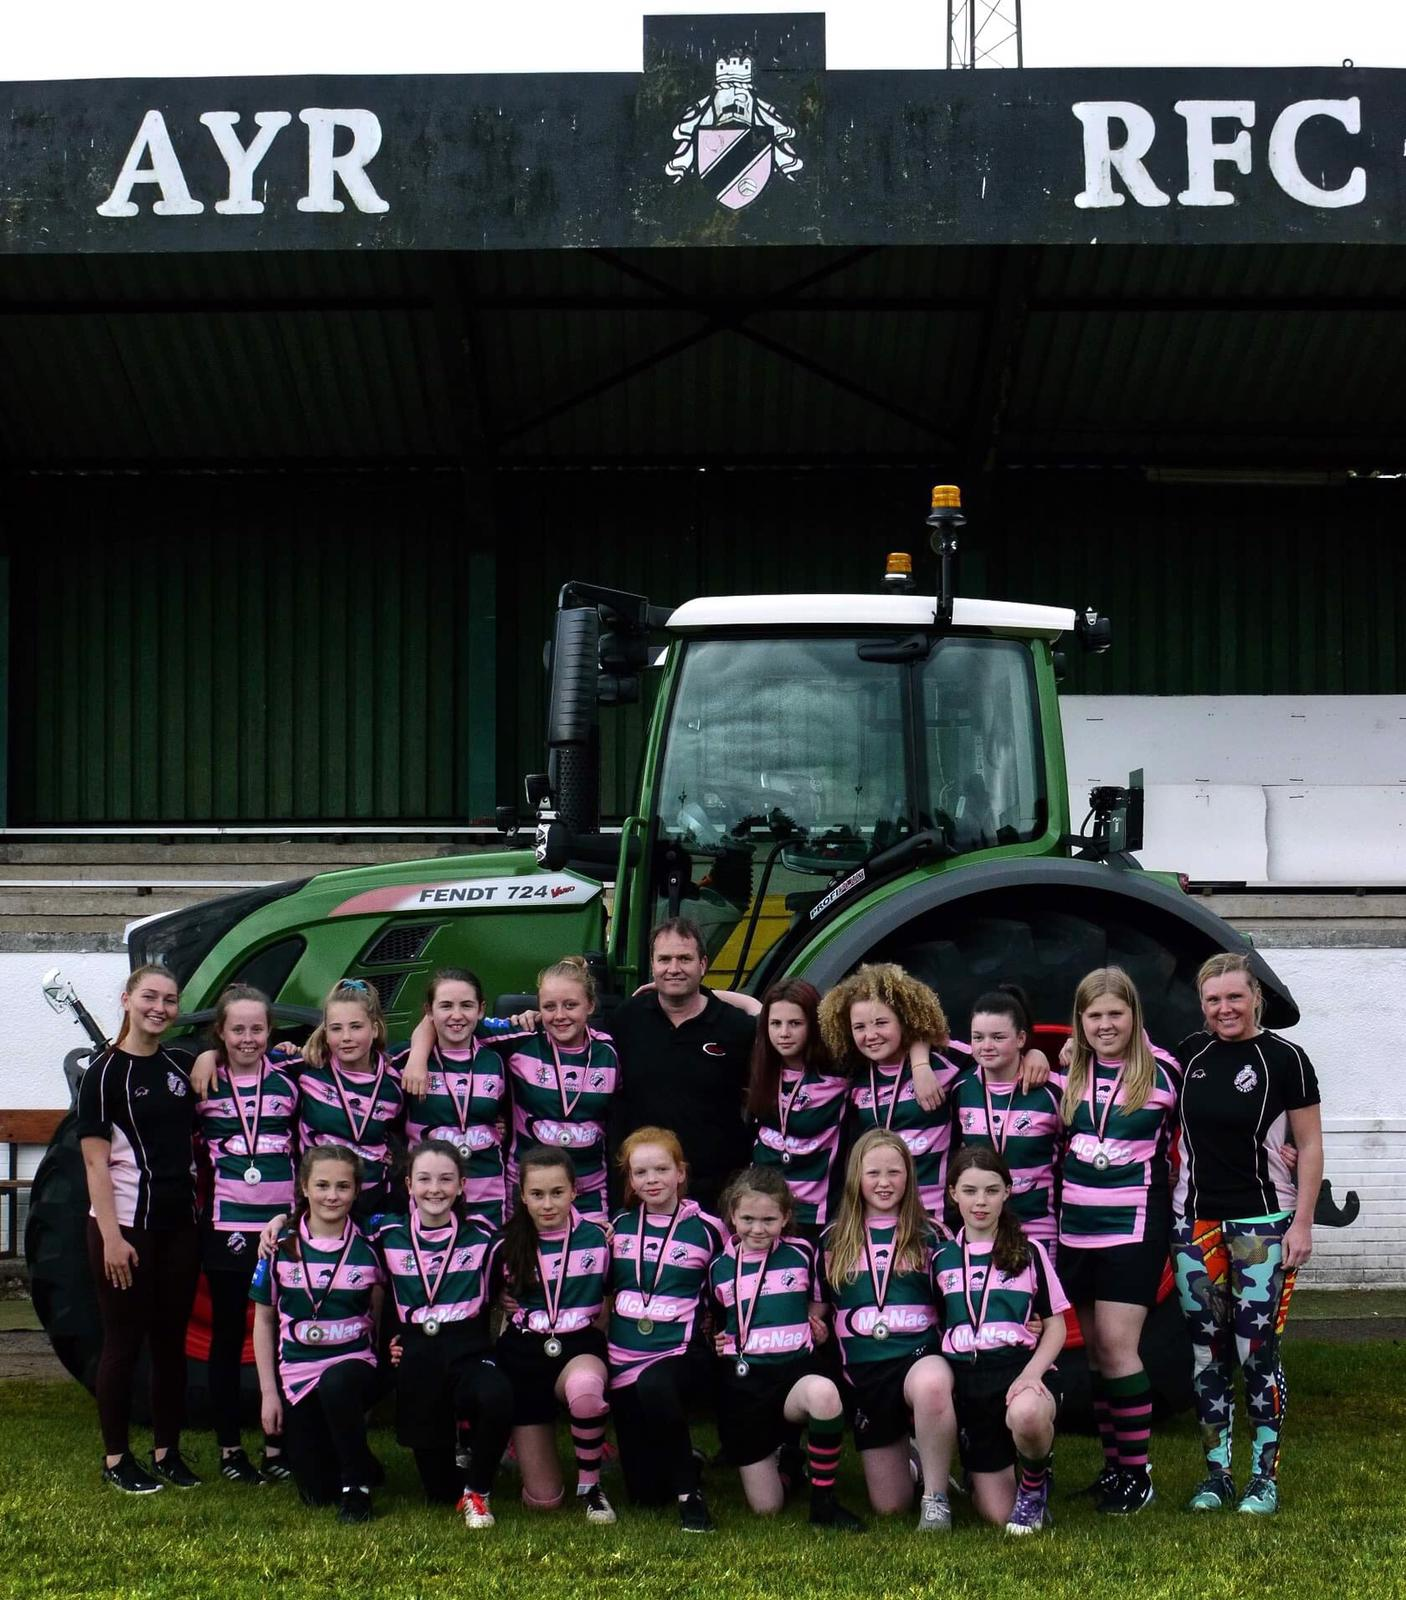 Ayr RFC Little Ladies